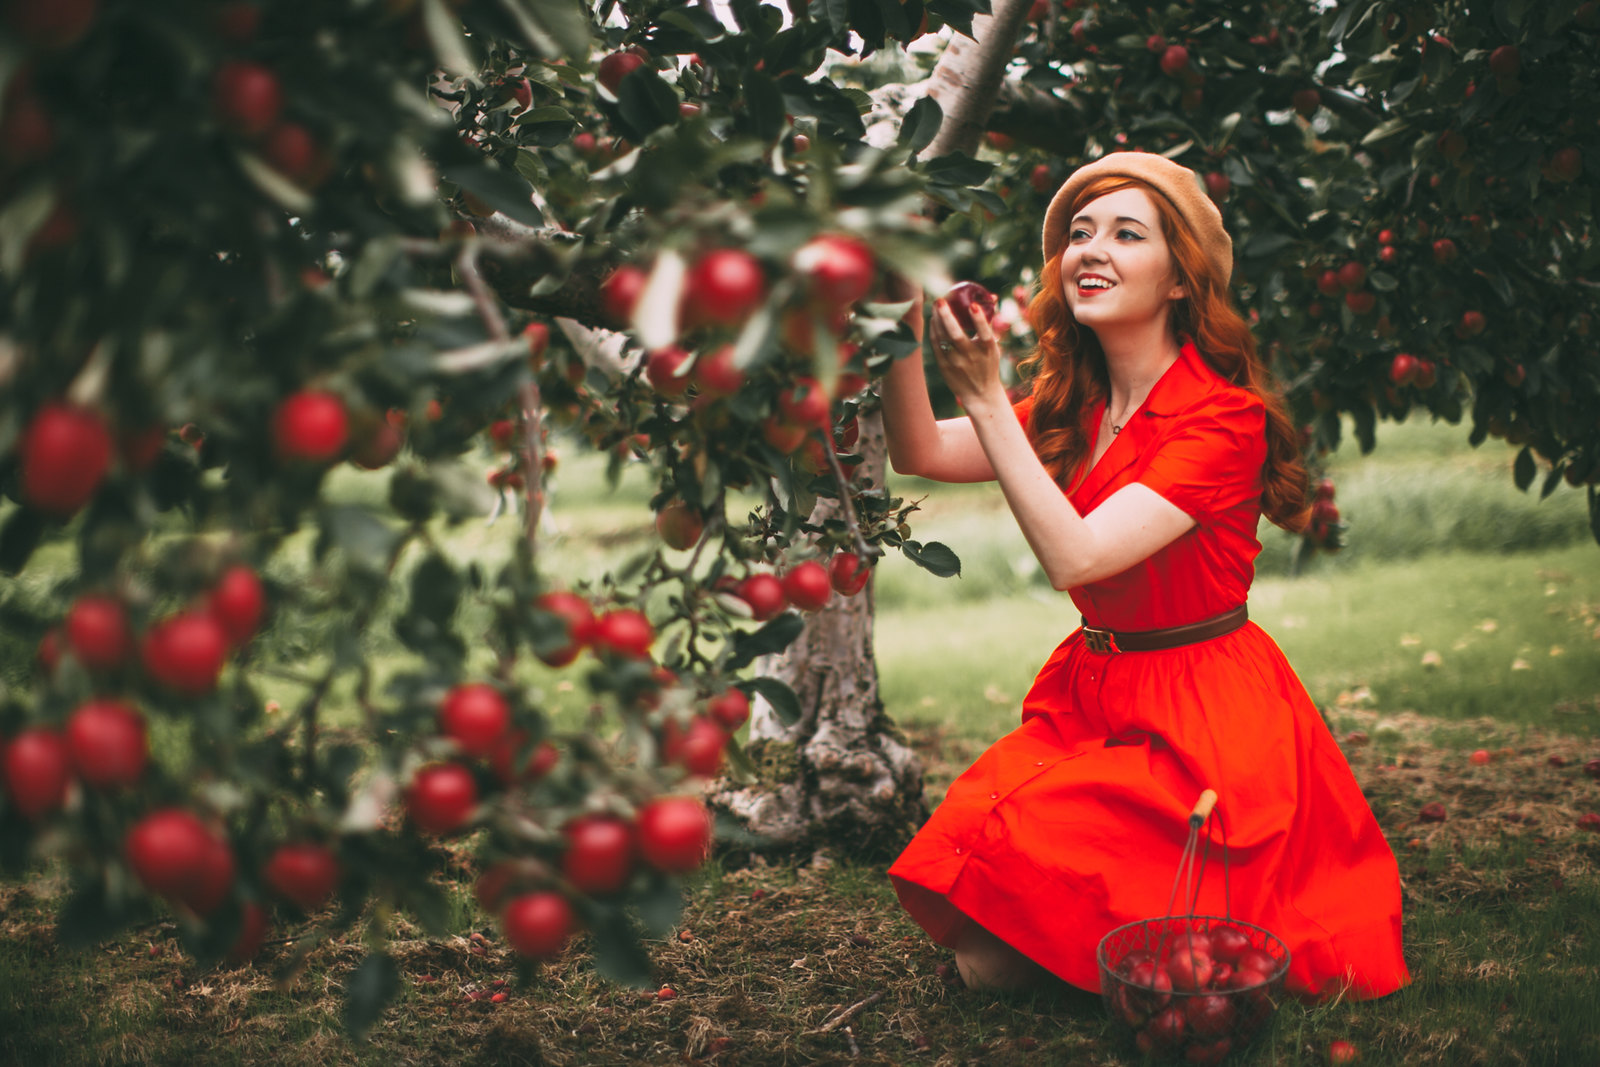 red apples-7